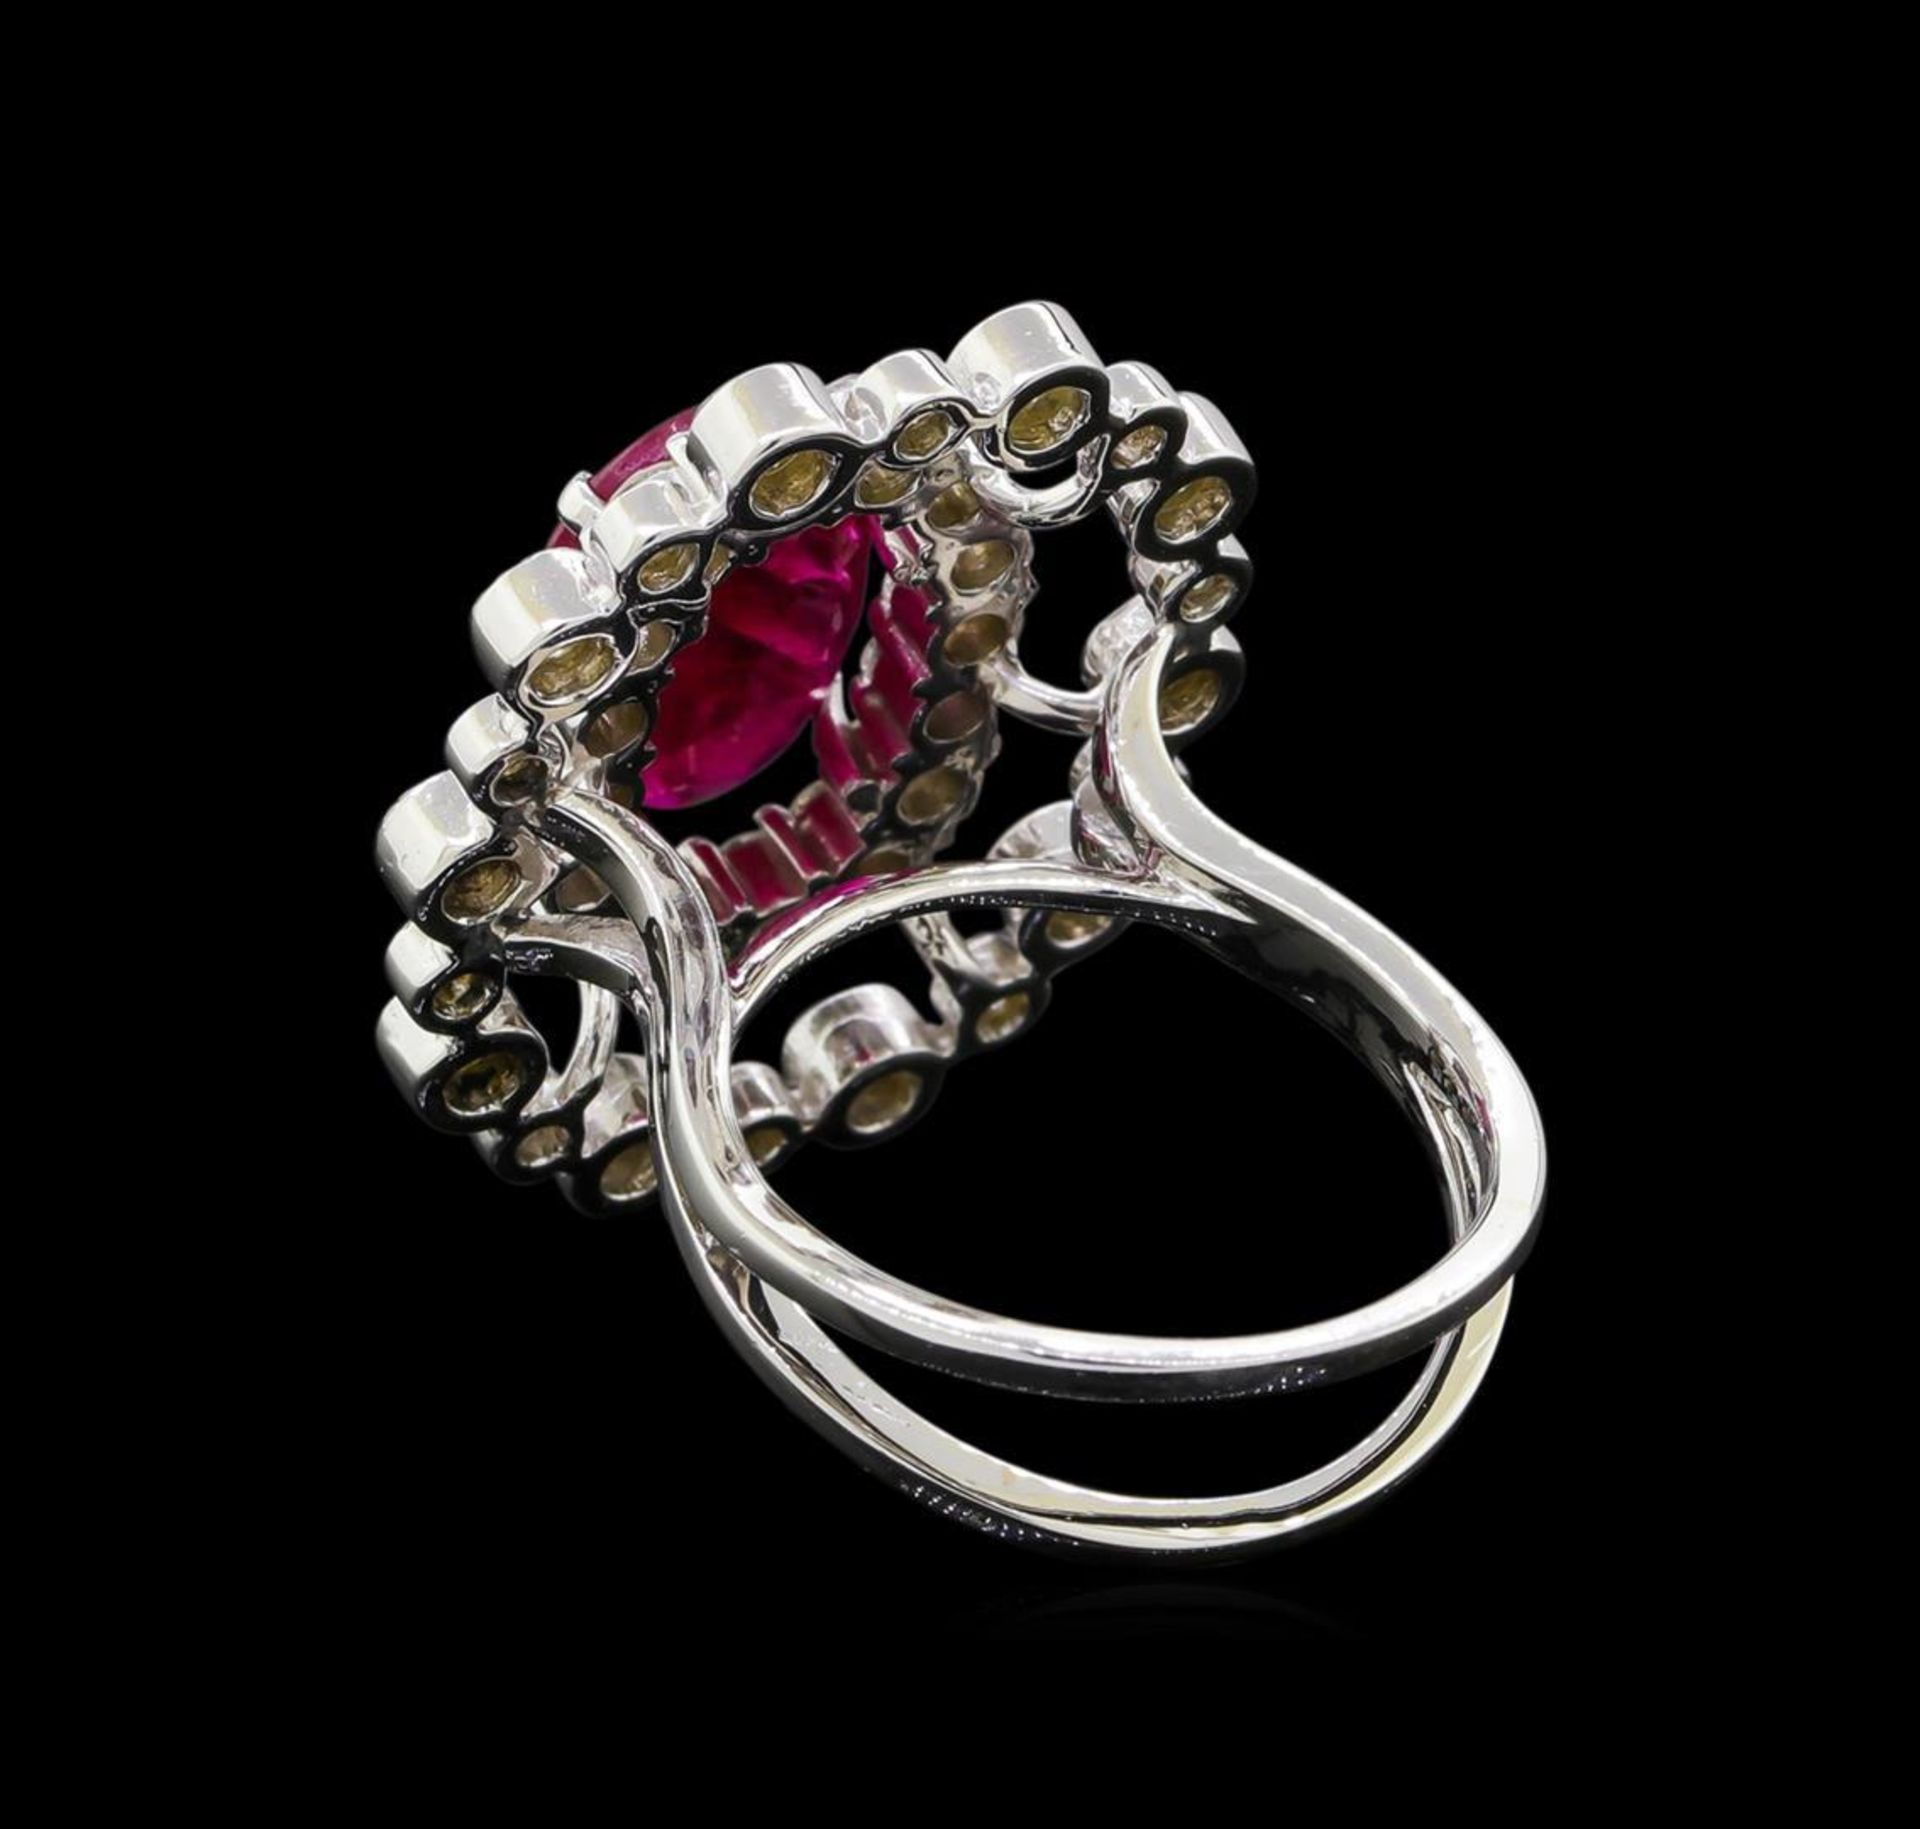 GIA Cert 4.22 ctw Ruby and Diamond Ring - 14KT White Gold - Image 3 of 6